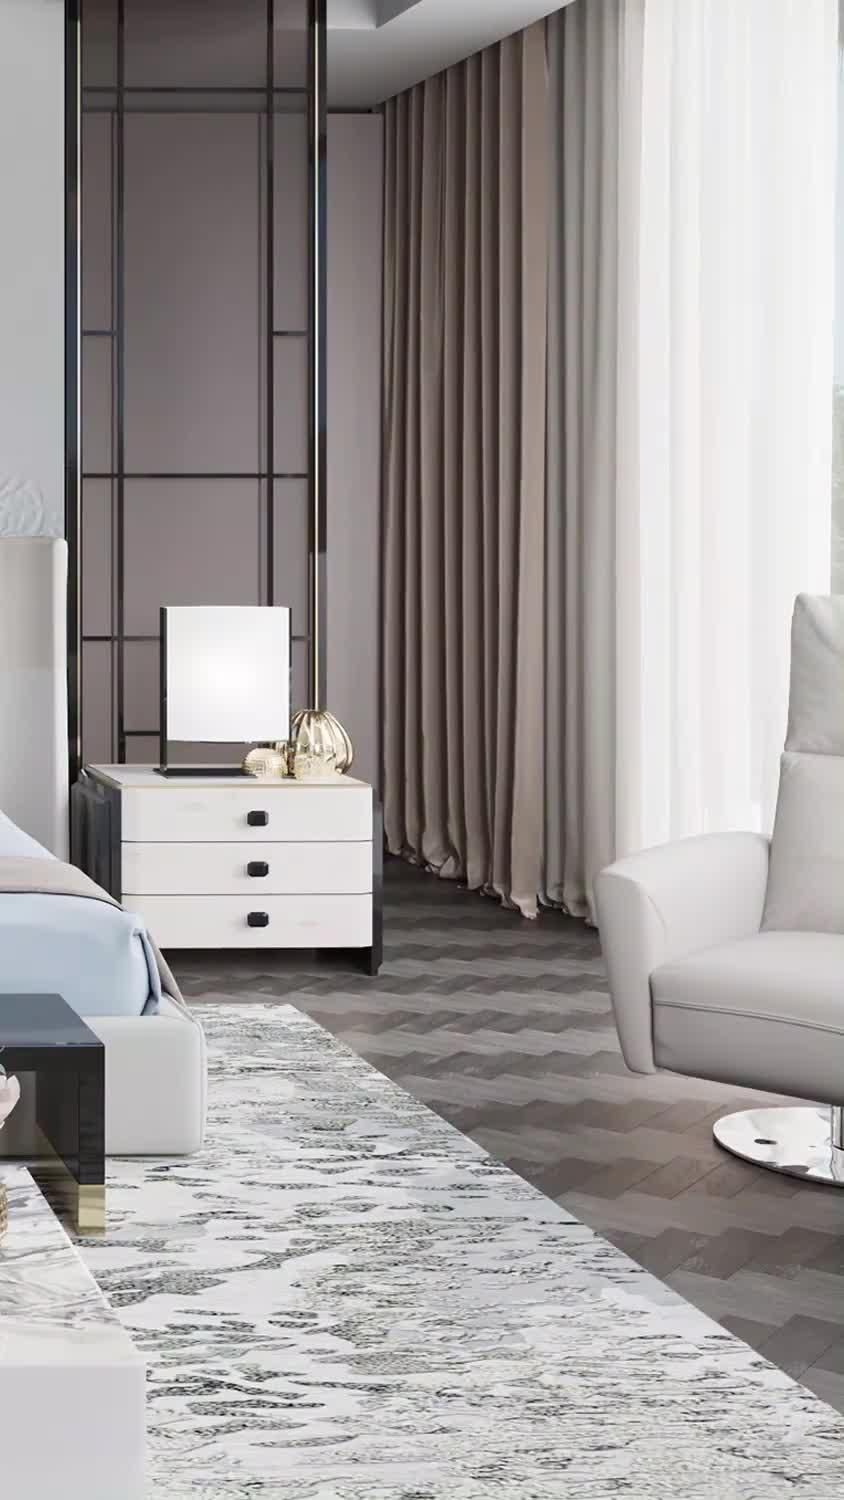 Sumptuousness family bedroom interior decoration videos for a